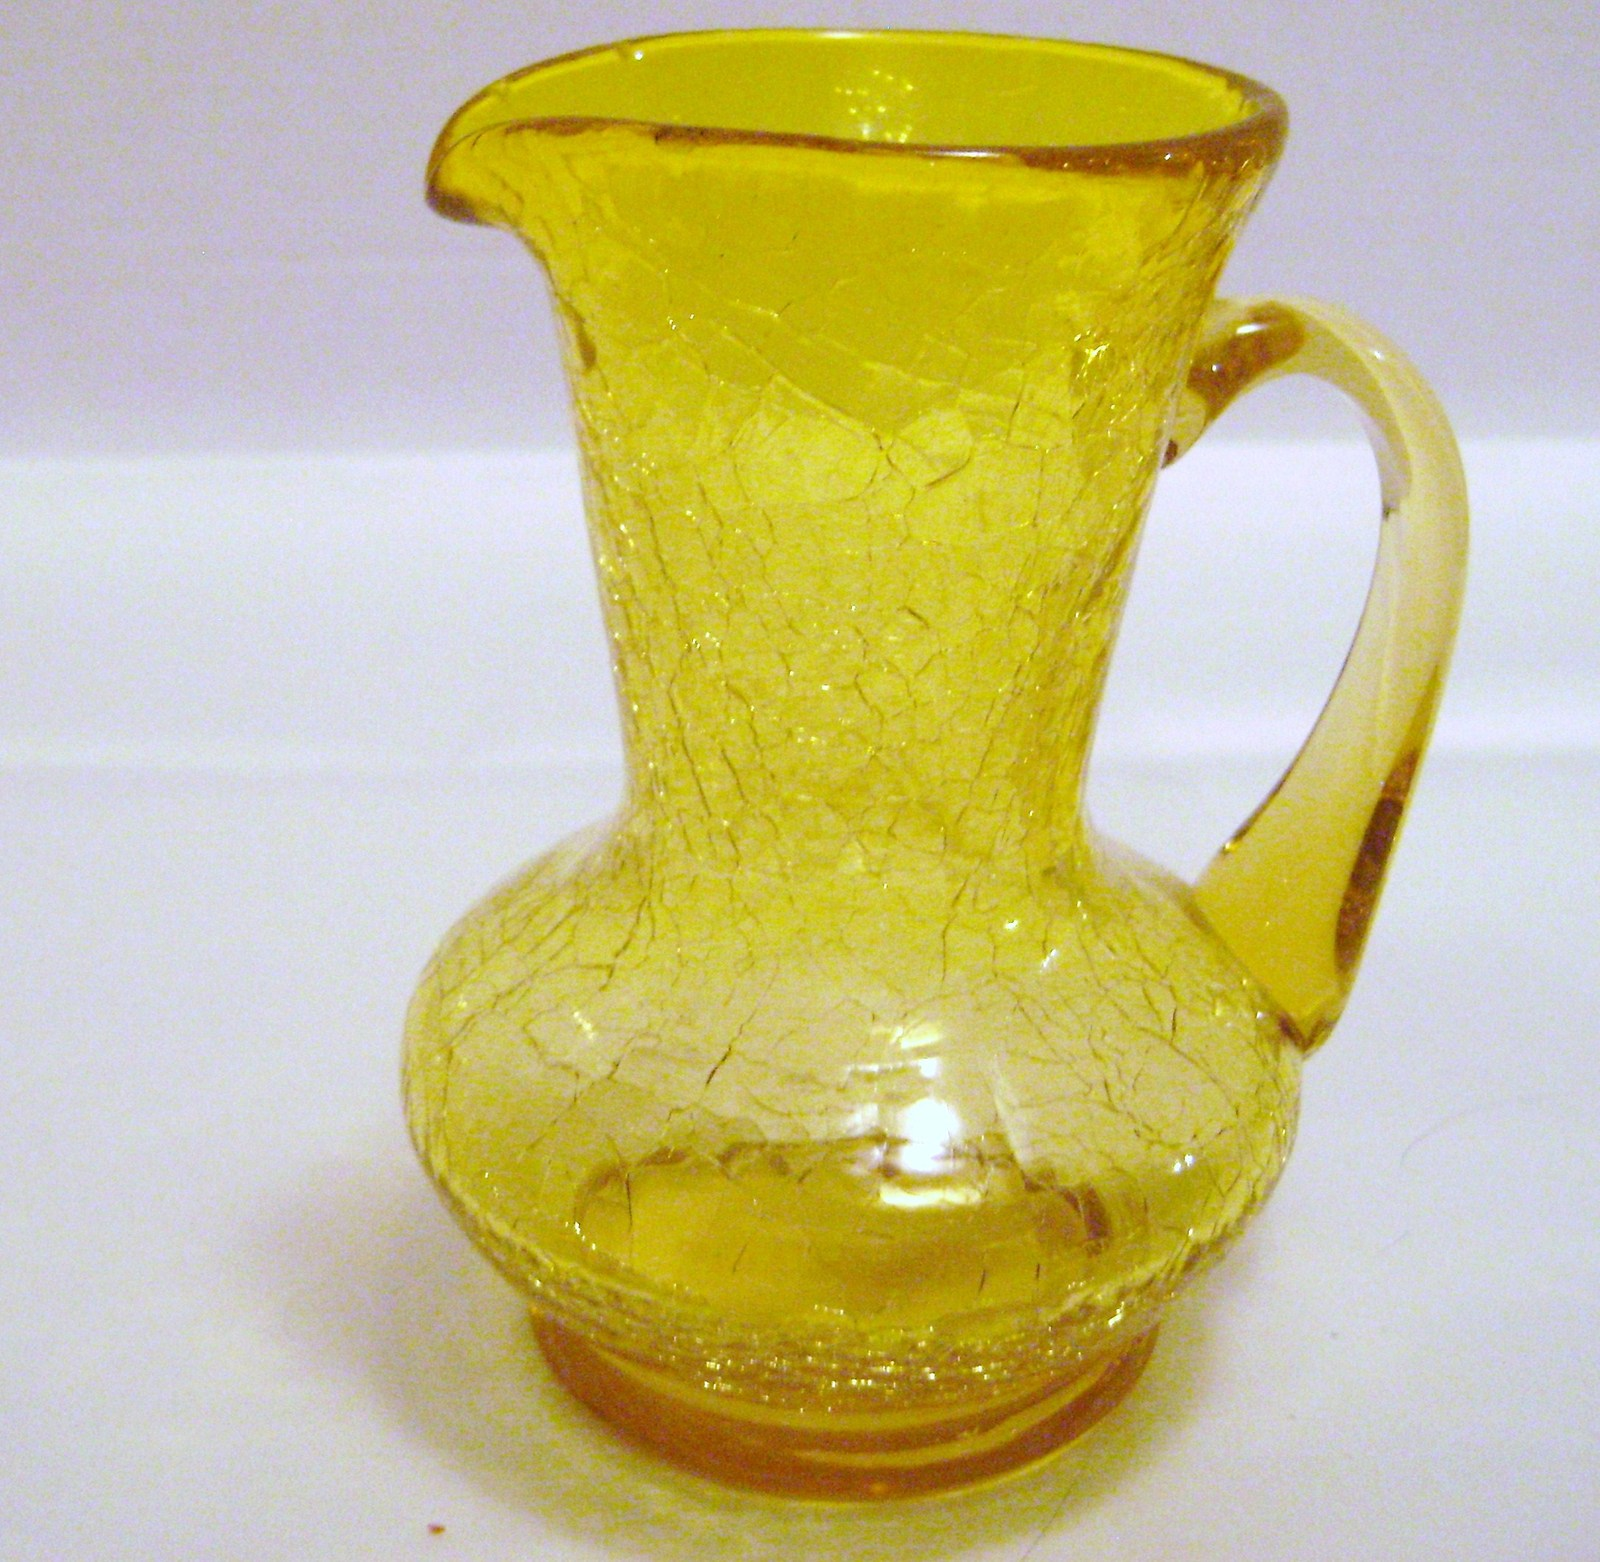 Kanawha Amber Crackle Glass Pitcher - $12.00